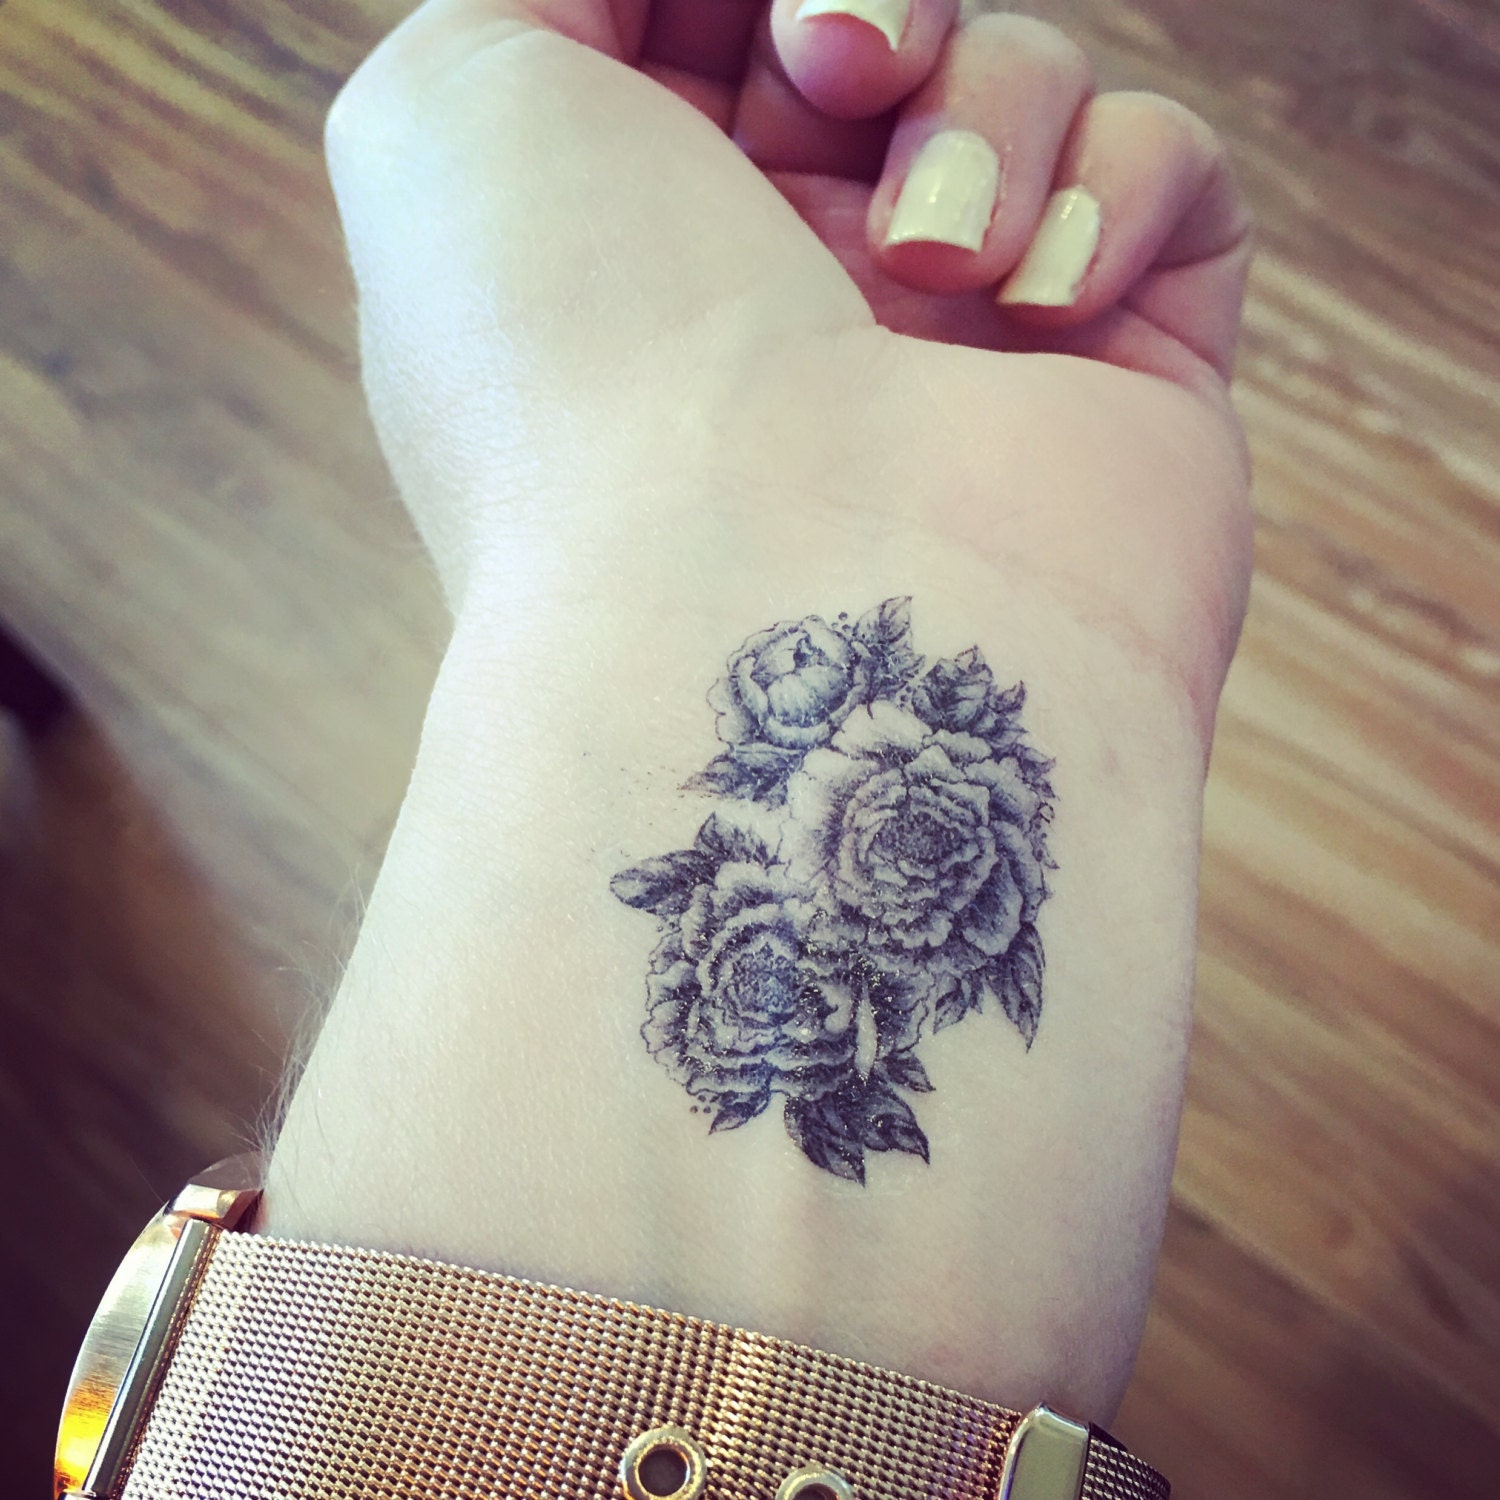 Temporary tattoo floral peony tattoo floral tattoo for Wash off temporary tattoos